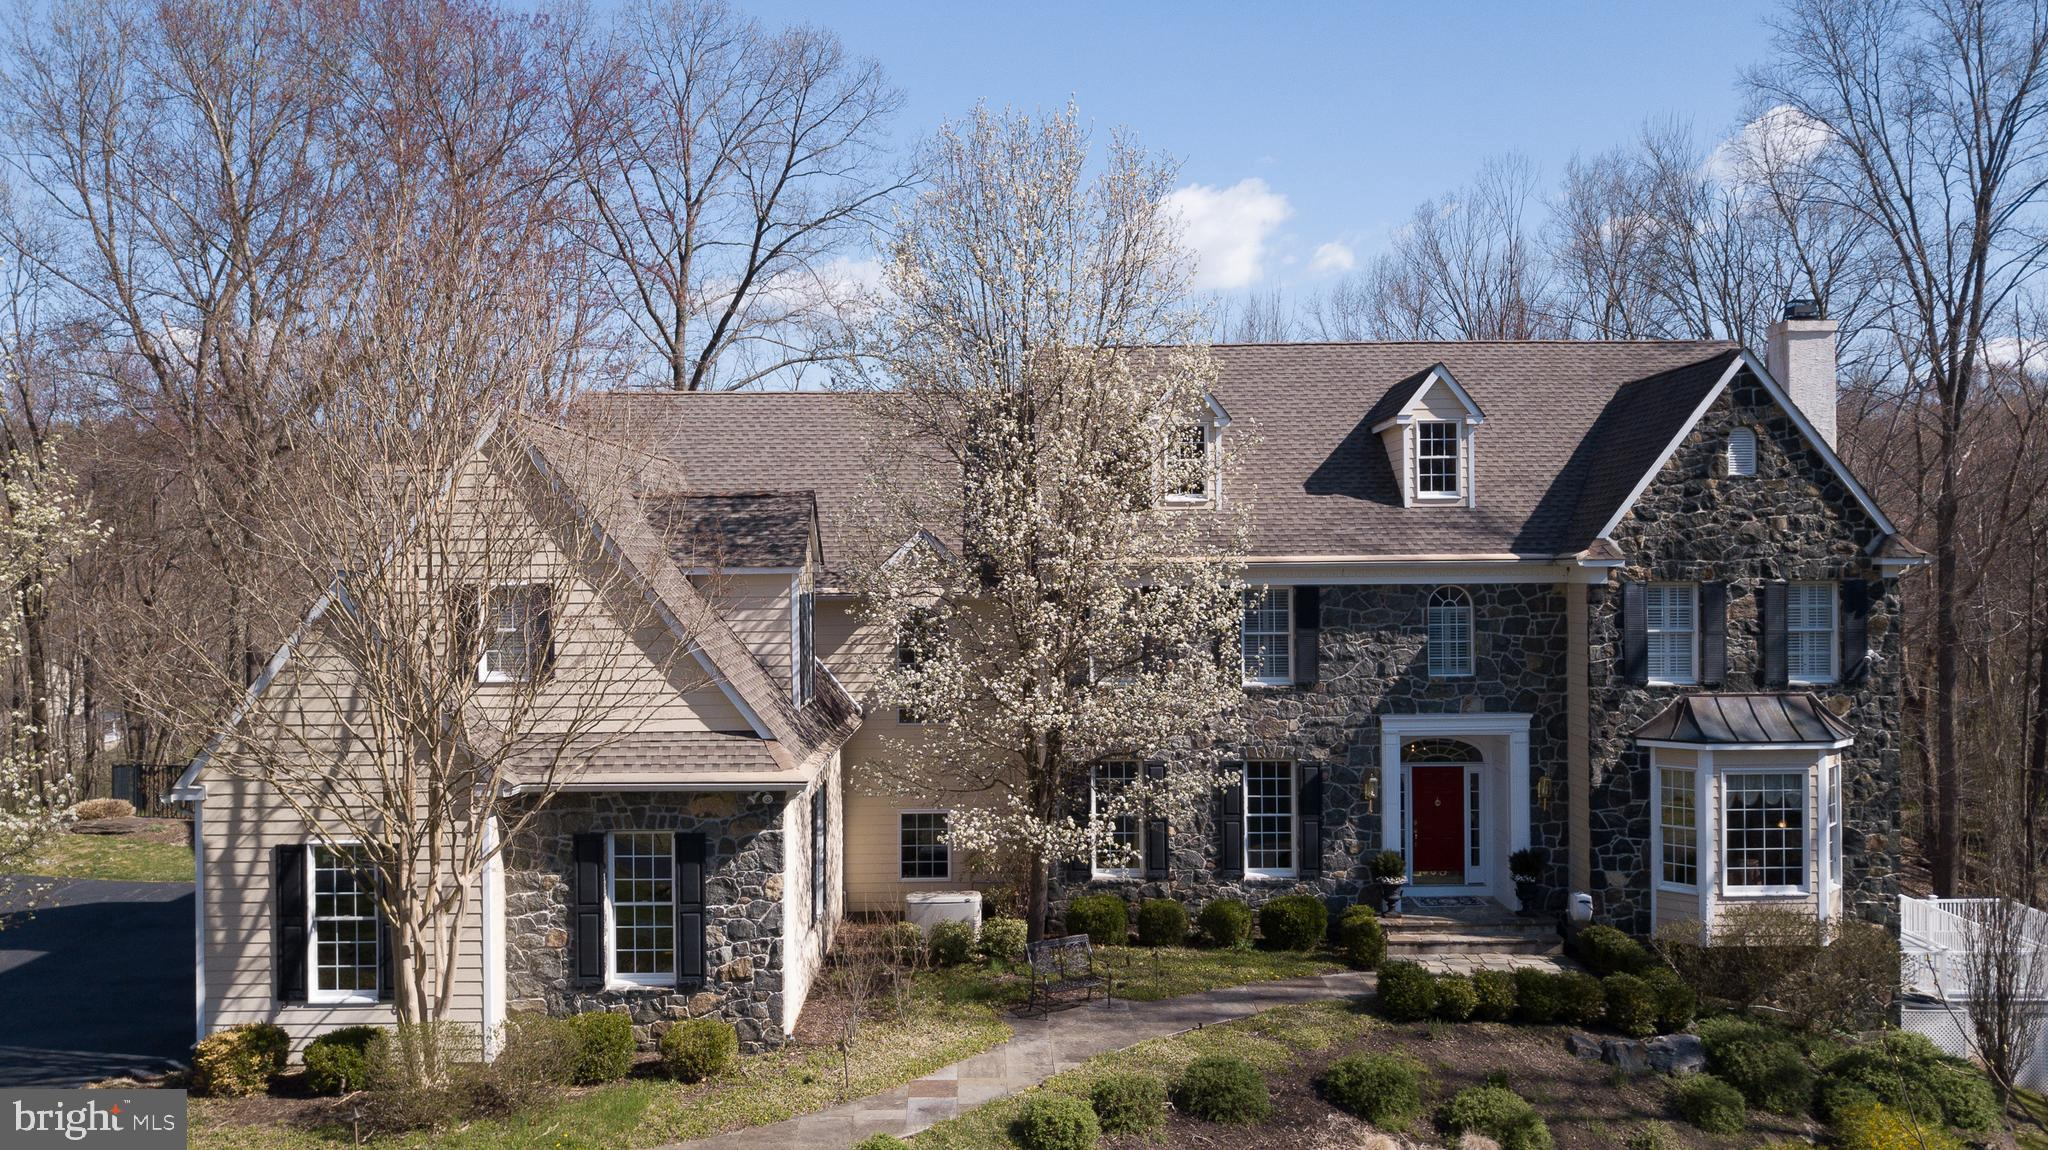 3 HOLLY TREE LANE, CHADDS FORD, PA 19317